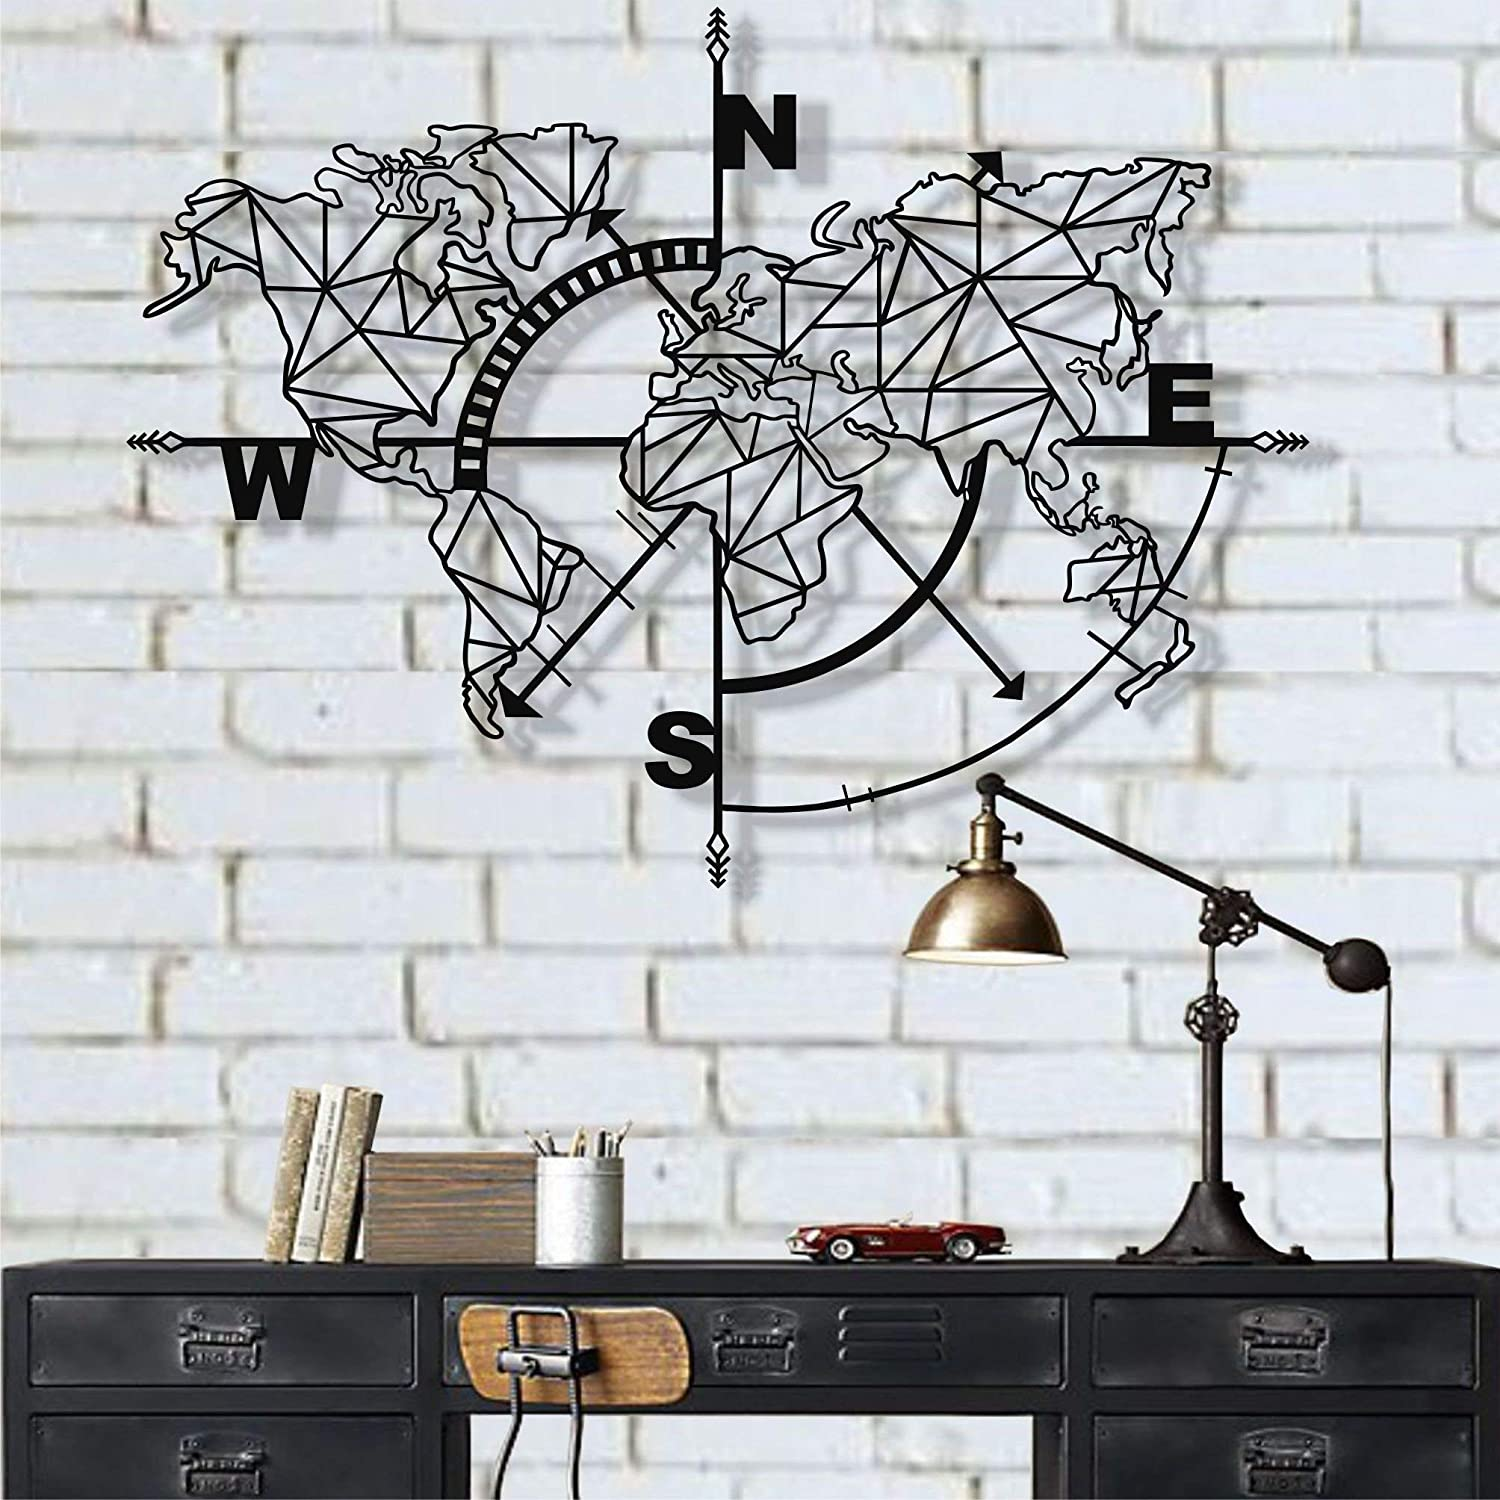 "DEKADRON Metal World Map Wall Art Geometric Compass, Metal Wall Decor Art Work, Metal Sign, Metal Wall Art, Metal Art, Wall Decoration Home Decor (40"" W x 30"" H / 101x76 cm)"